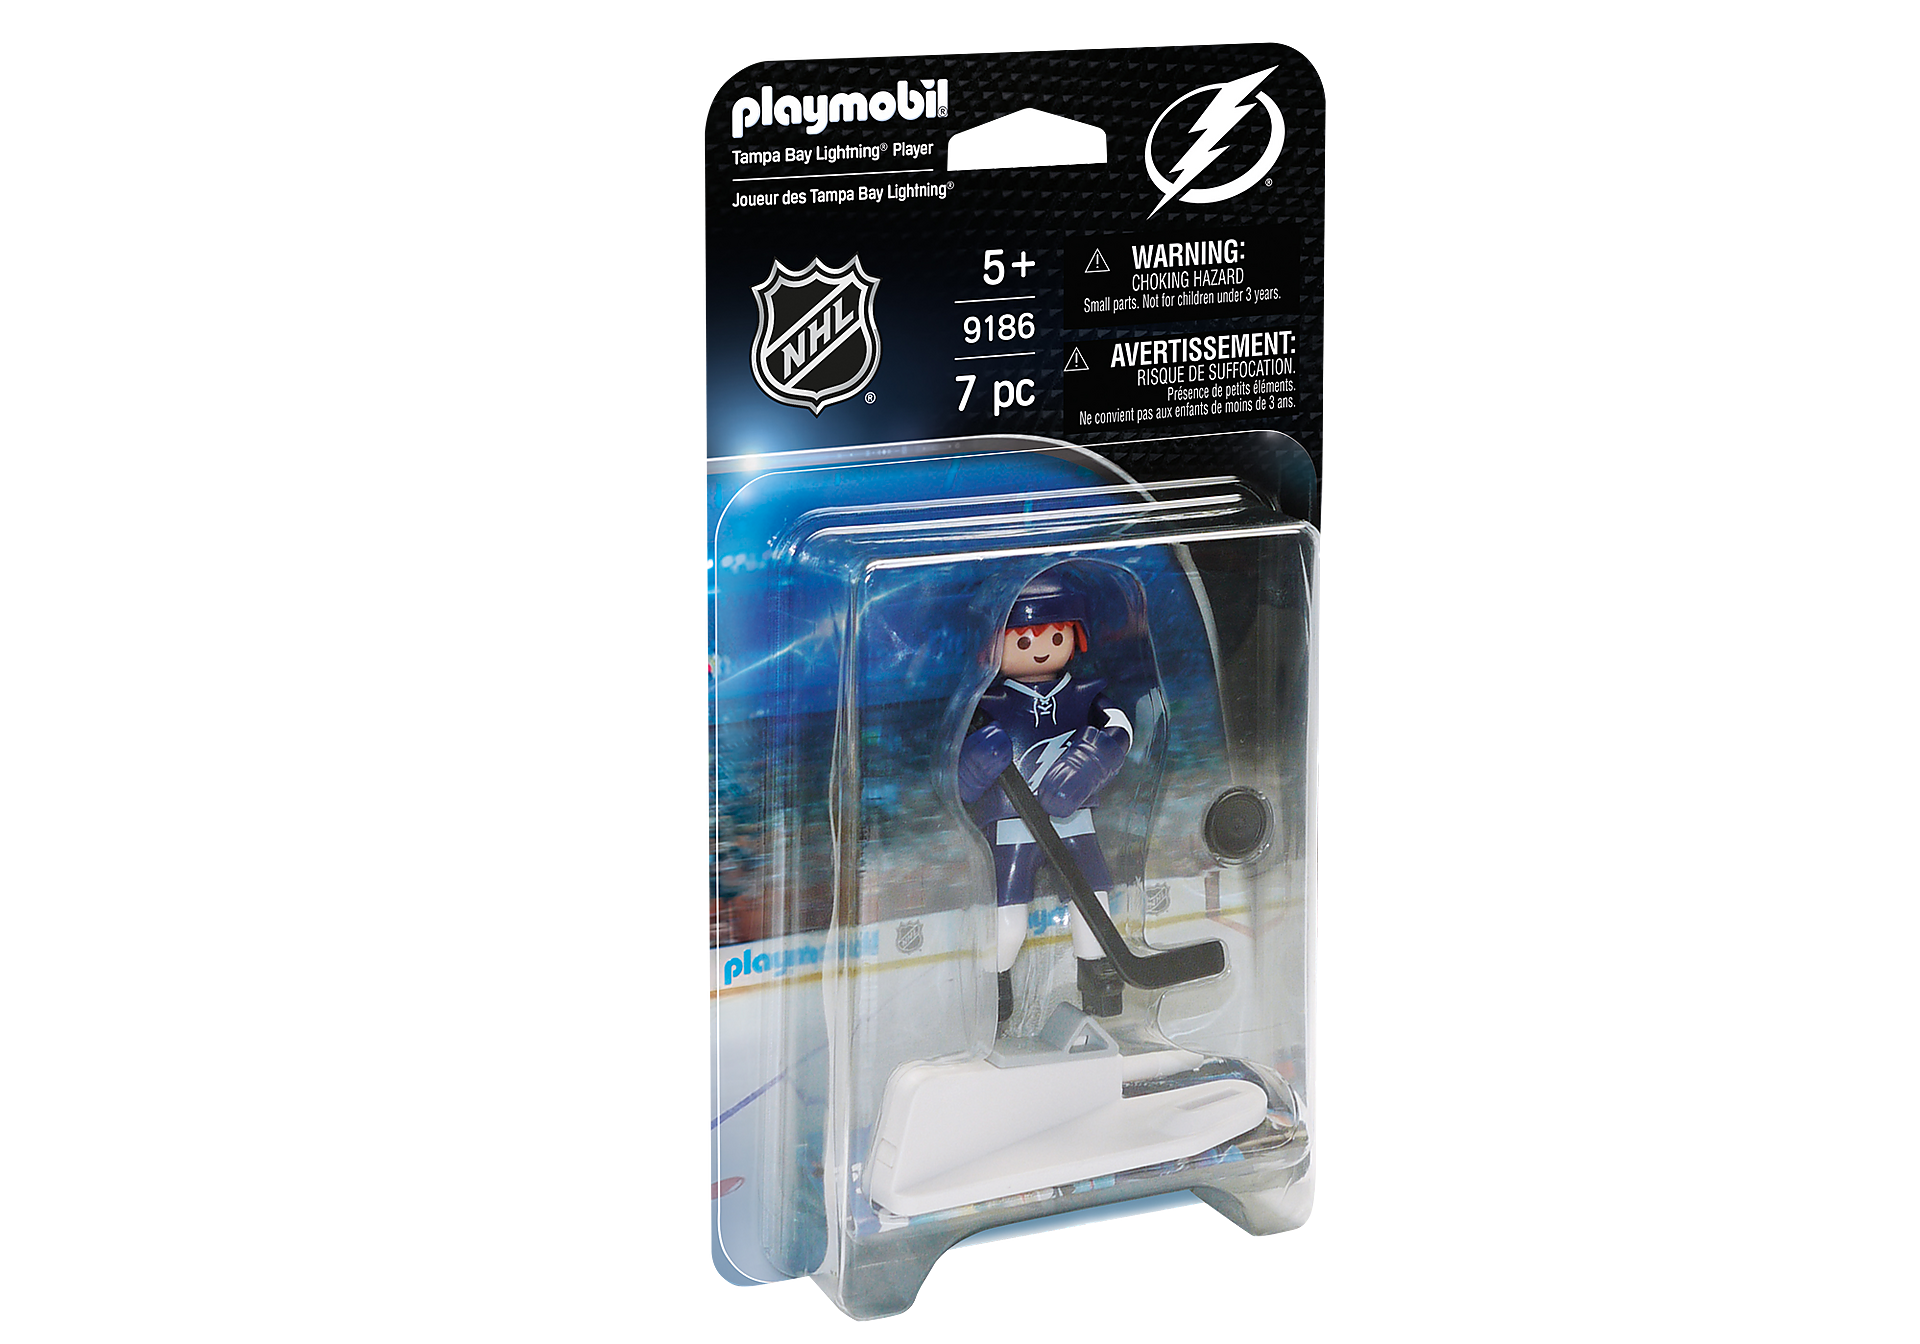 http://media.playmobil.com/i/playmobil/9186_product_box_front/NHL® Tampa Bay Lightning® Player